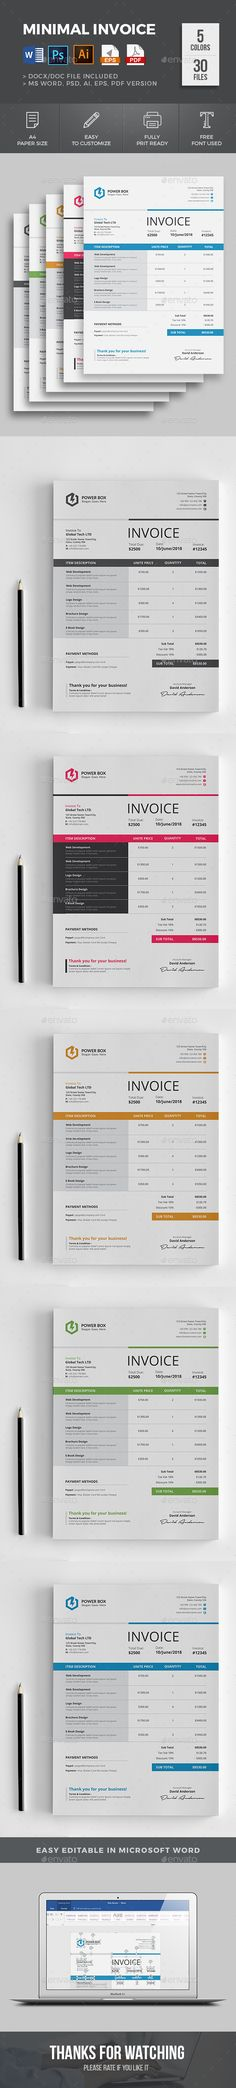 Invoice Design 50 Examples To Inspire You People, Layouts and - web invoice